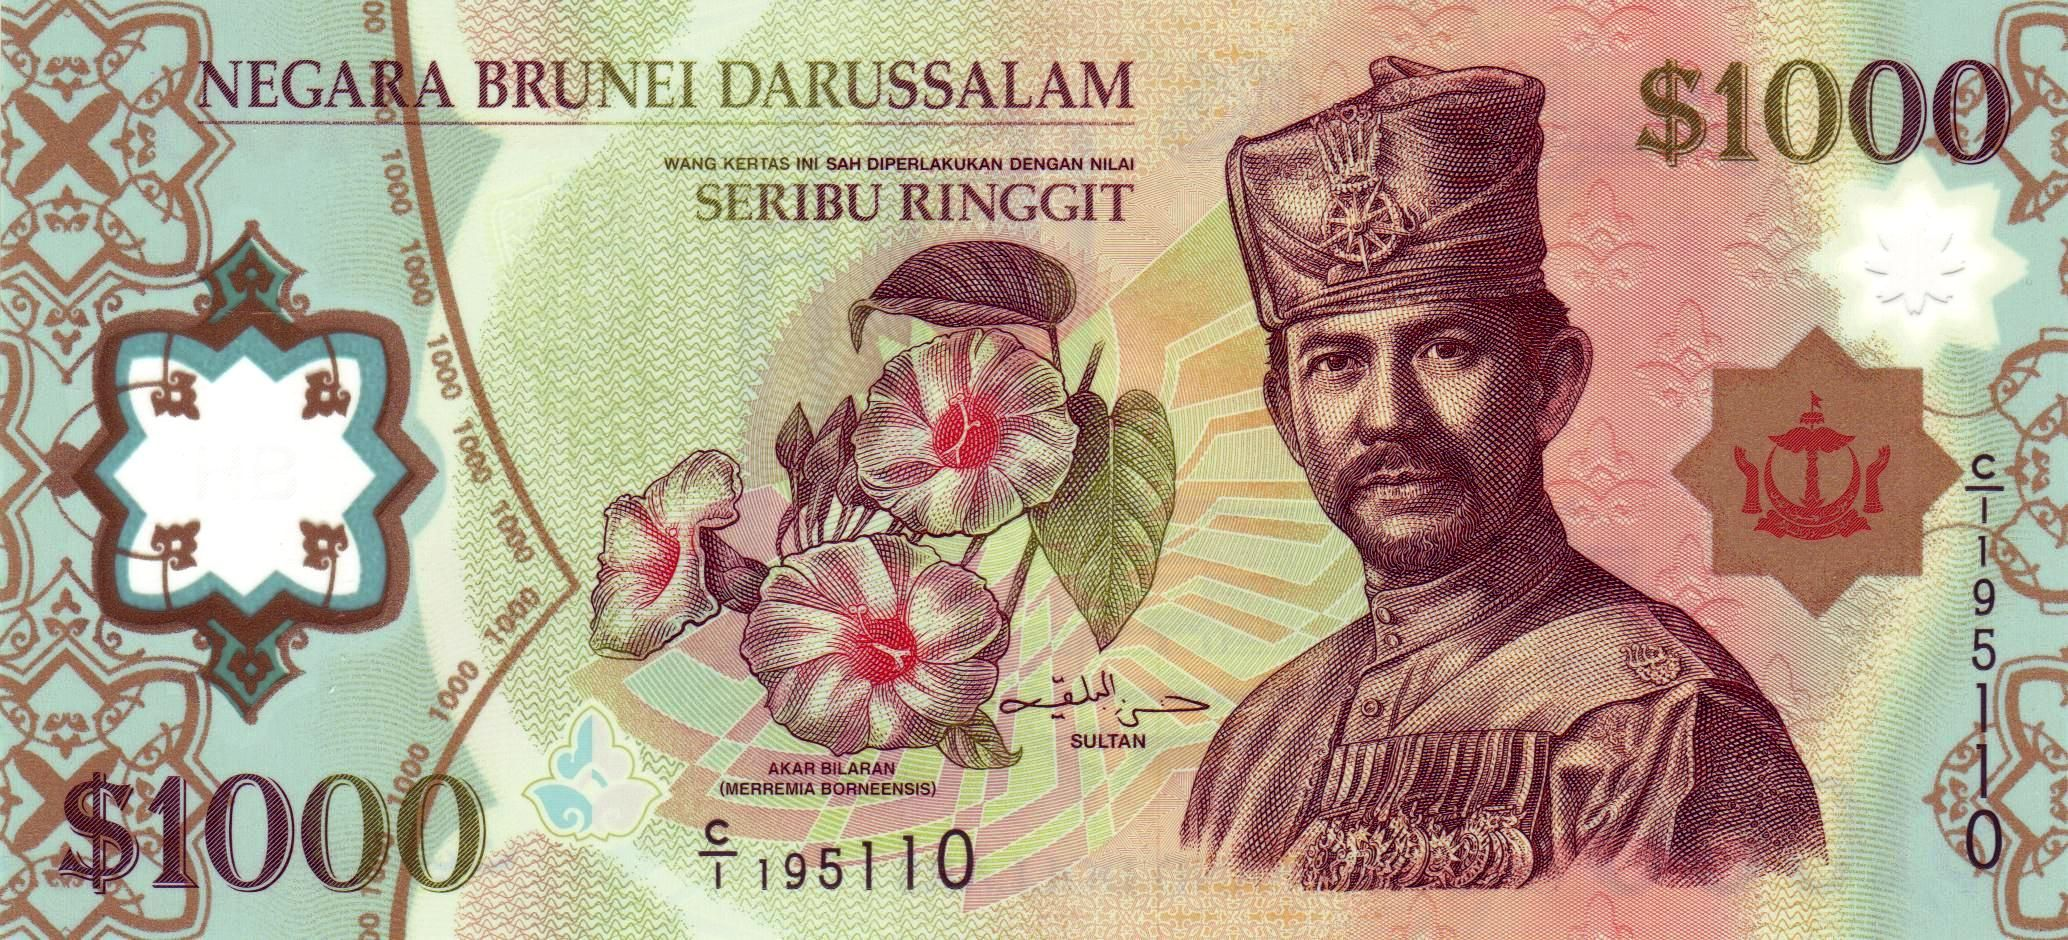 An Image Of The B 1 000 1000 Currency Brunei Uang